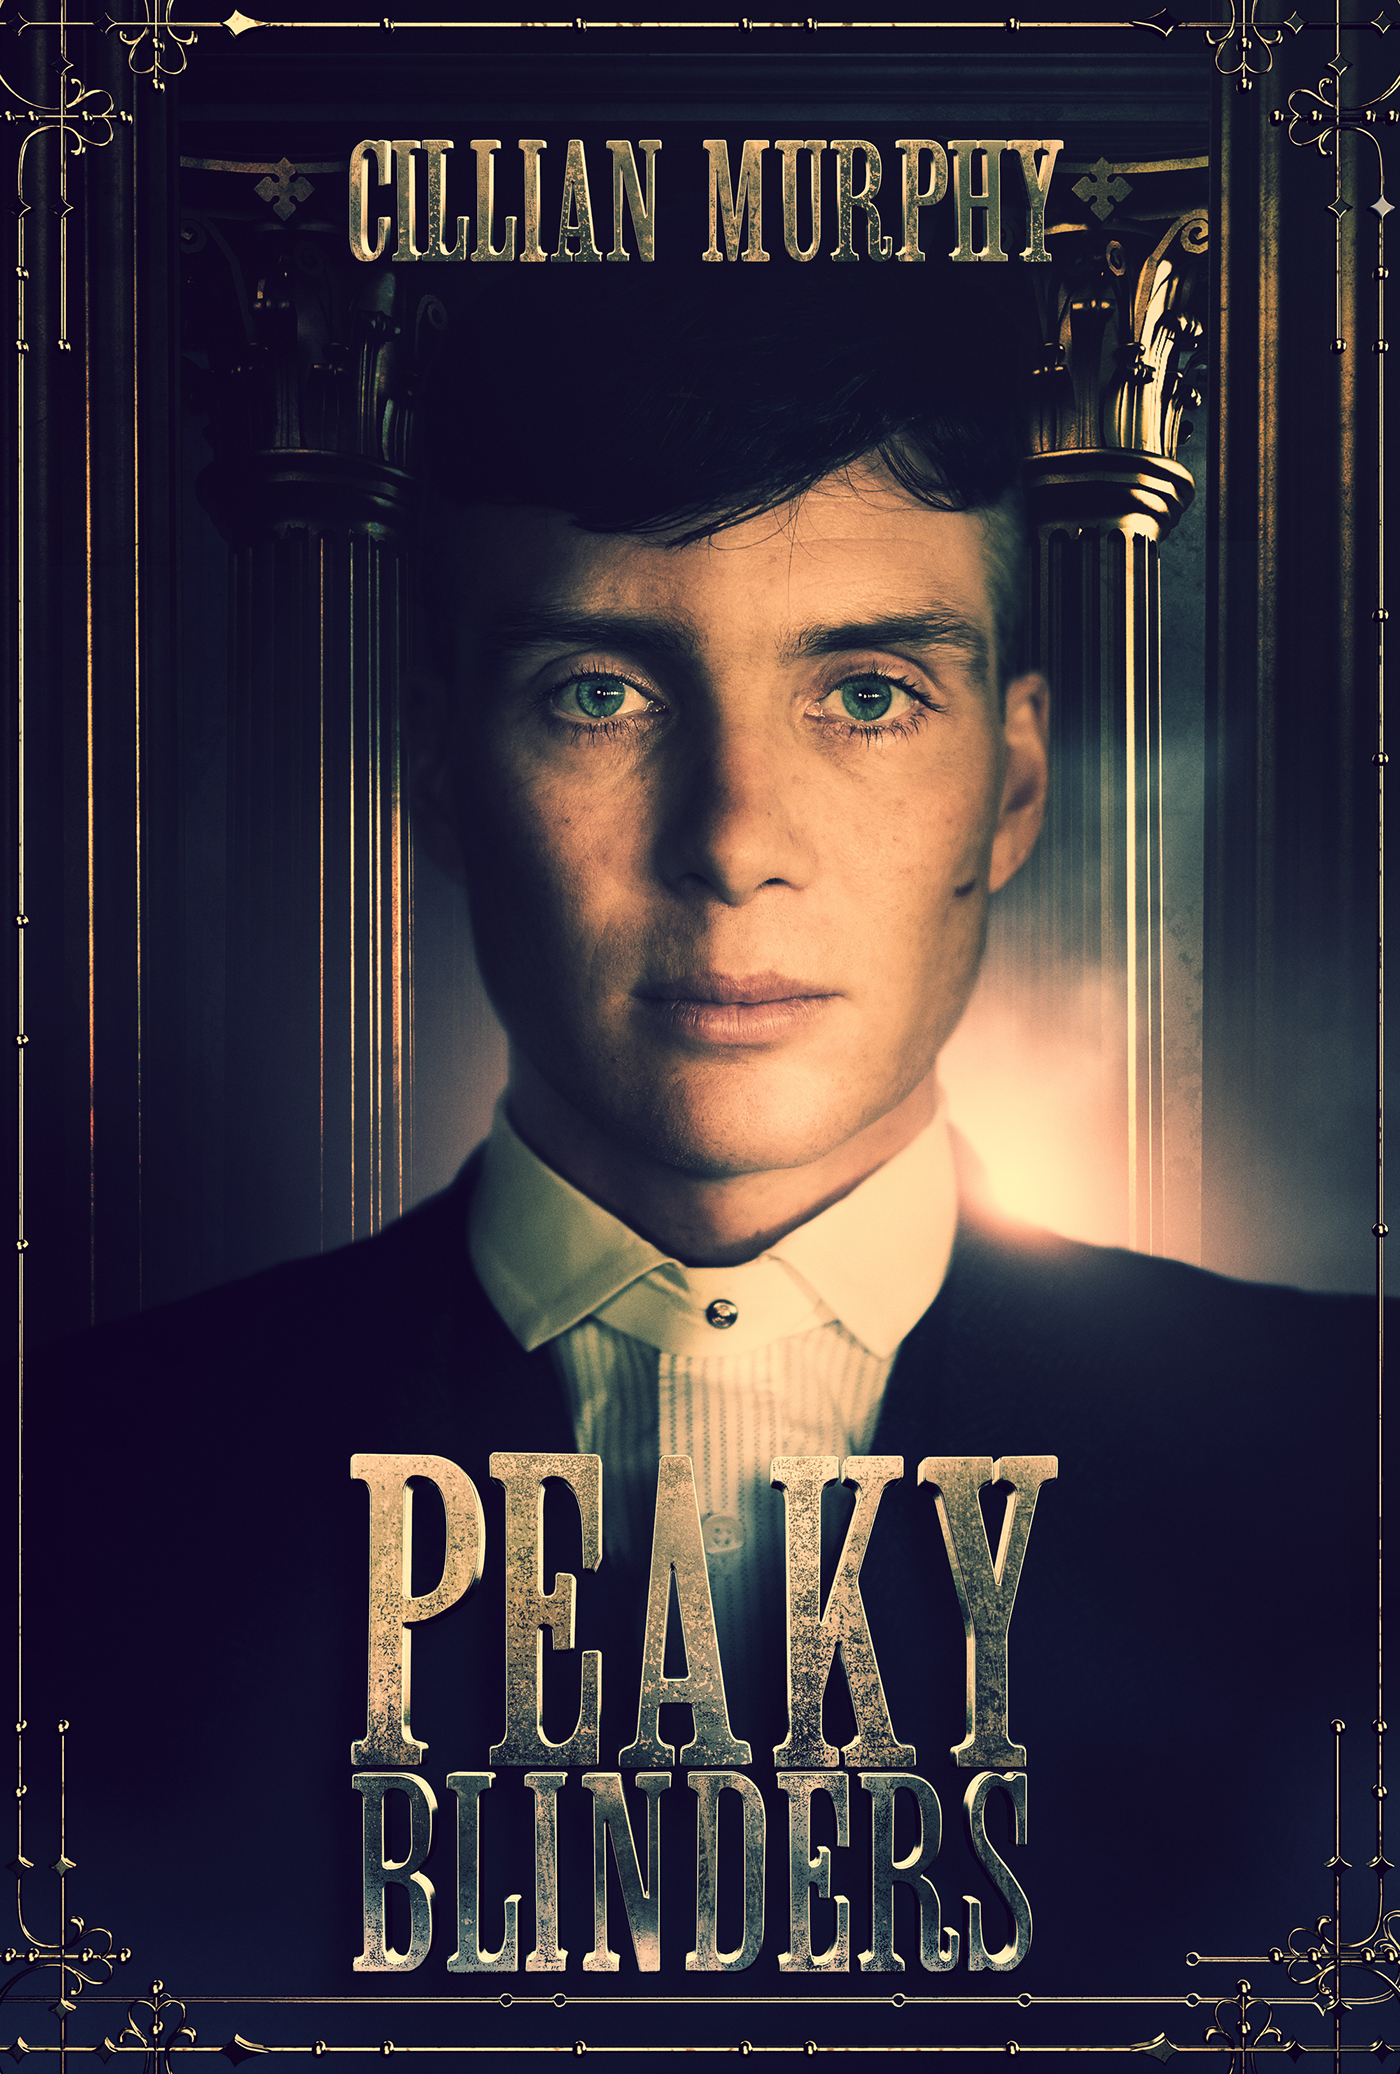 Peaky Blinders - Posters on Behance